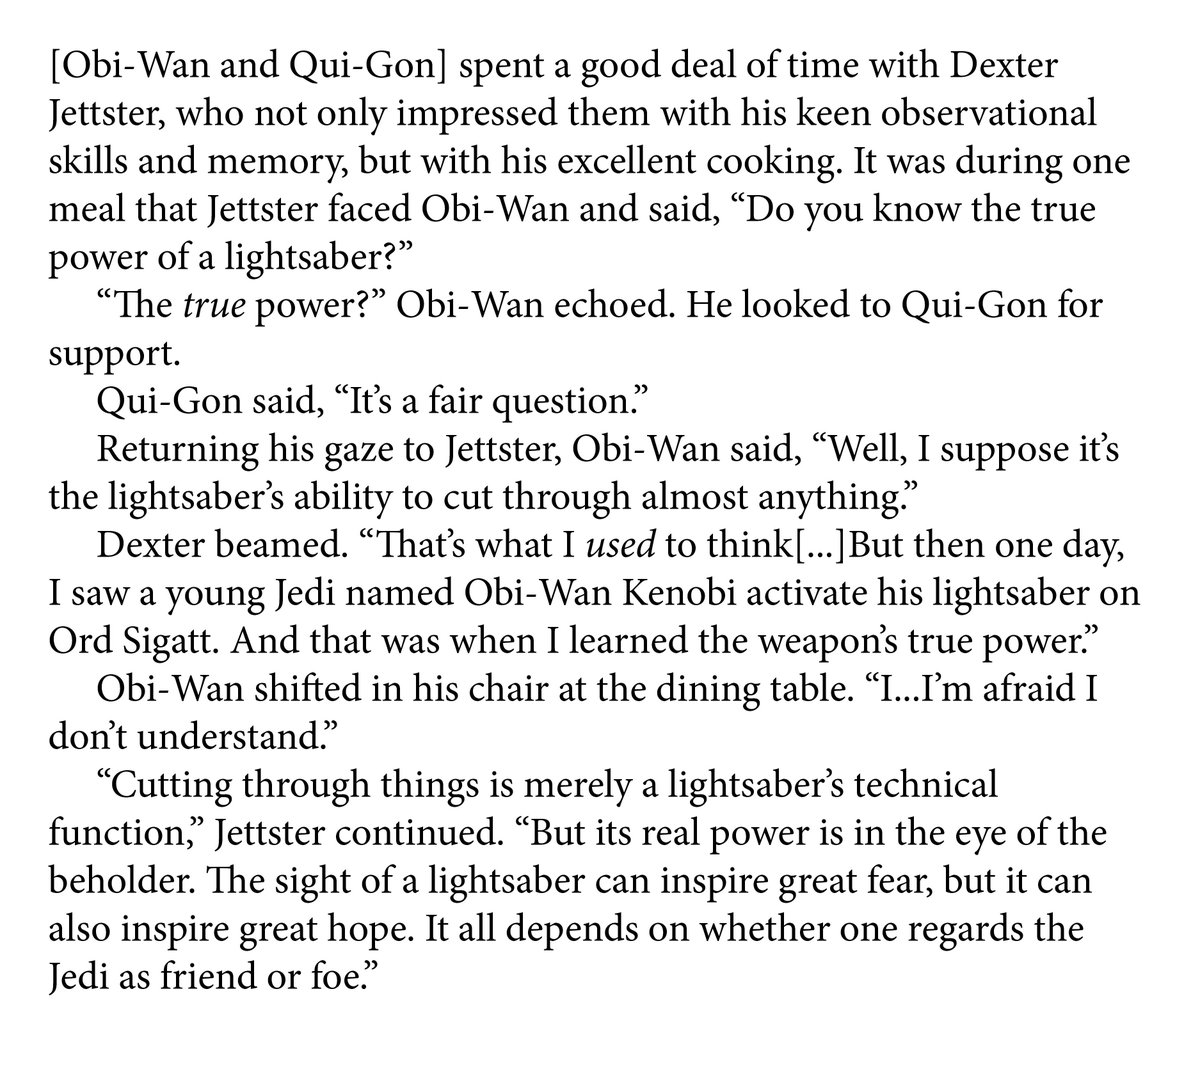 'The Life and Legend of Obi-Wan Kenobi' by Ryder Windham (Legends) contains a story of Padawan Obi-Wan meeting #DexterJettster for the first time while on Ord Sigatt. #BookQuoteoftheDay #ObiWanKenobi #QuiGonJinn<br>http://pic.twitter.com/IBcDeWW3an